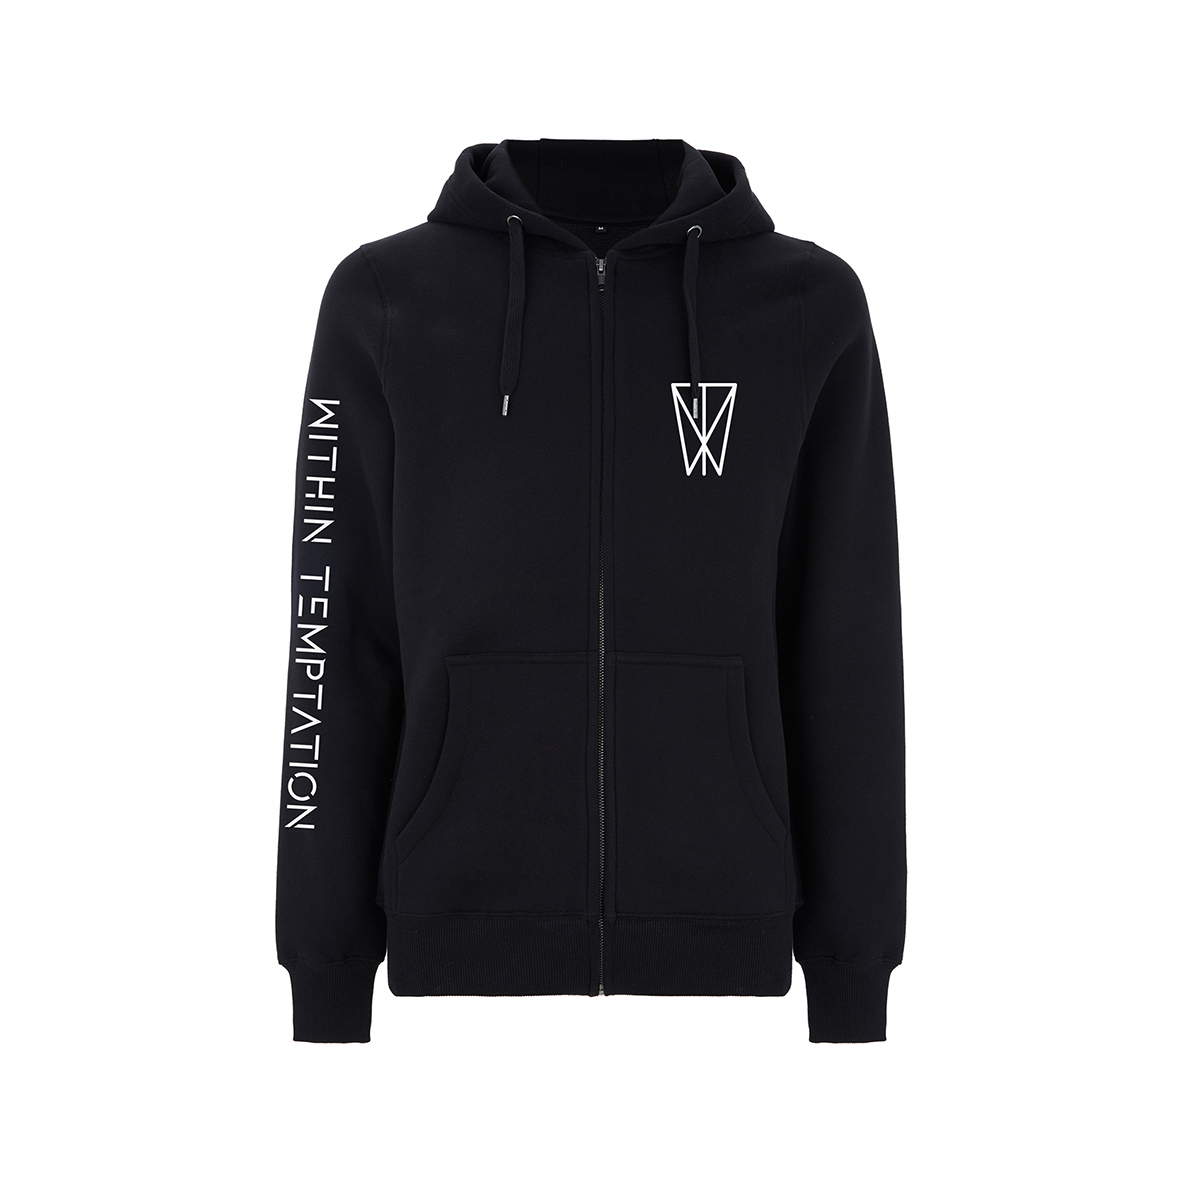 Resist Mars - Black Zip Hood - Within Temptation